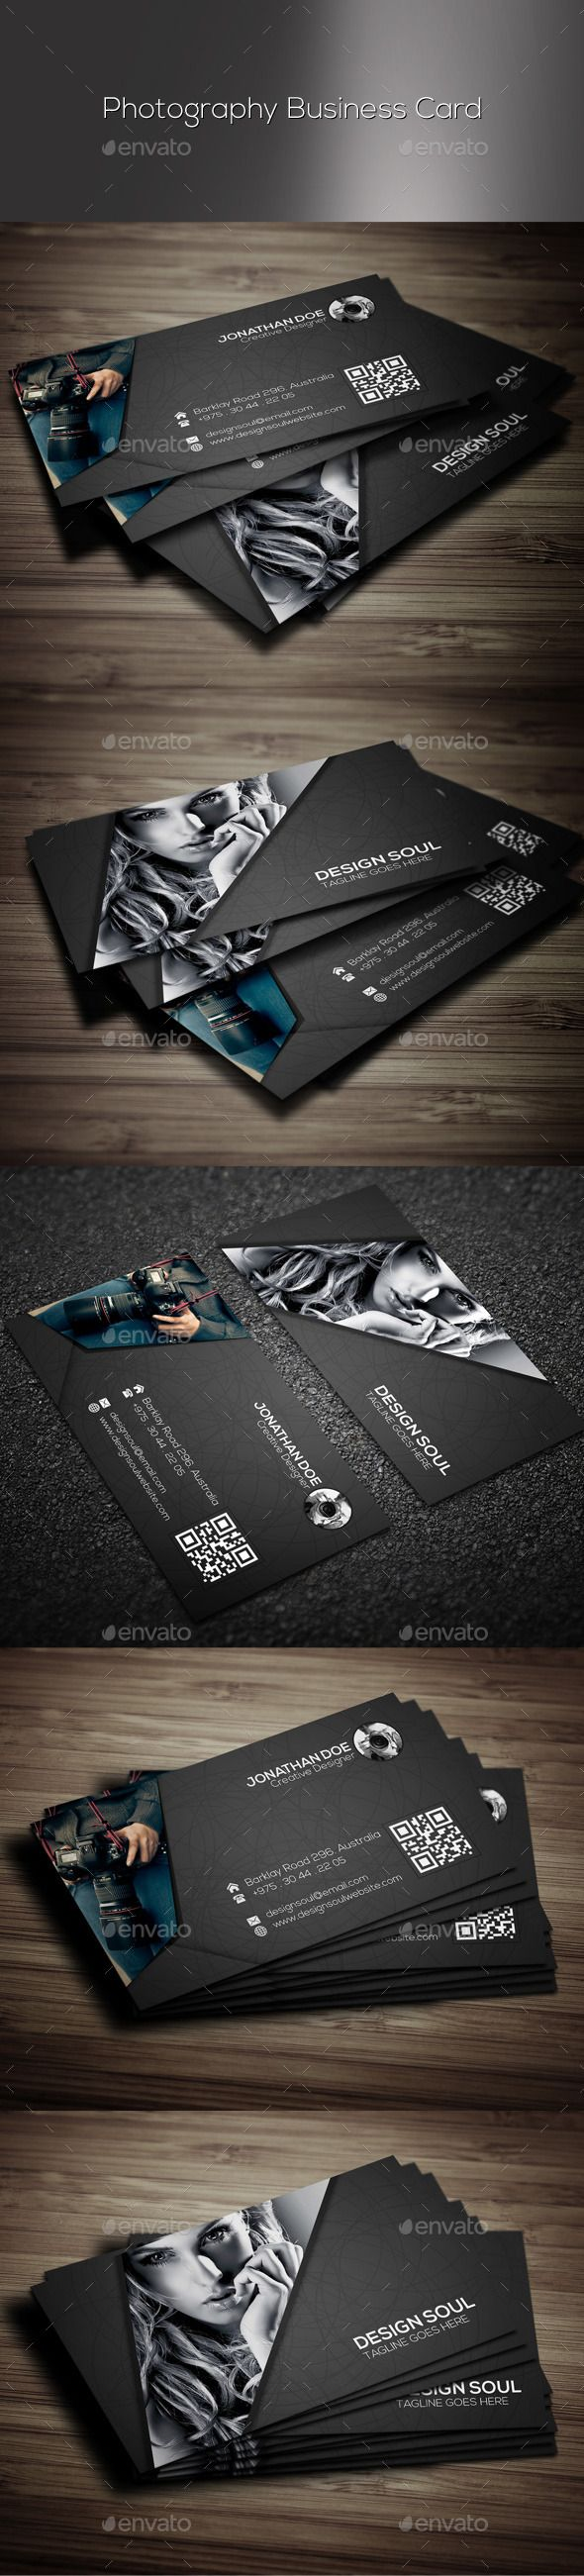 Photography Business Card | Photography business cards, Photography ...